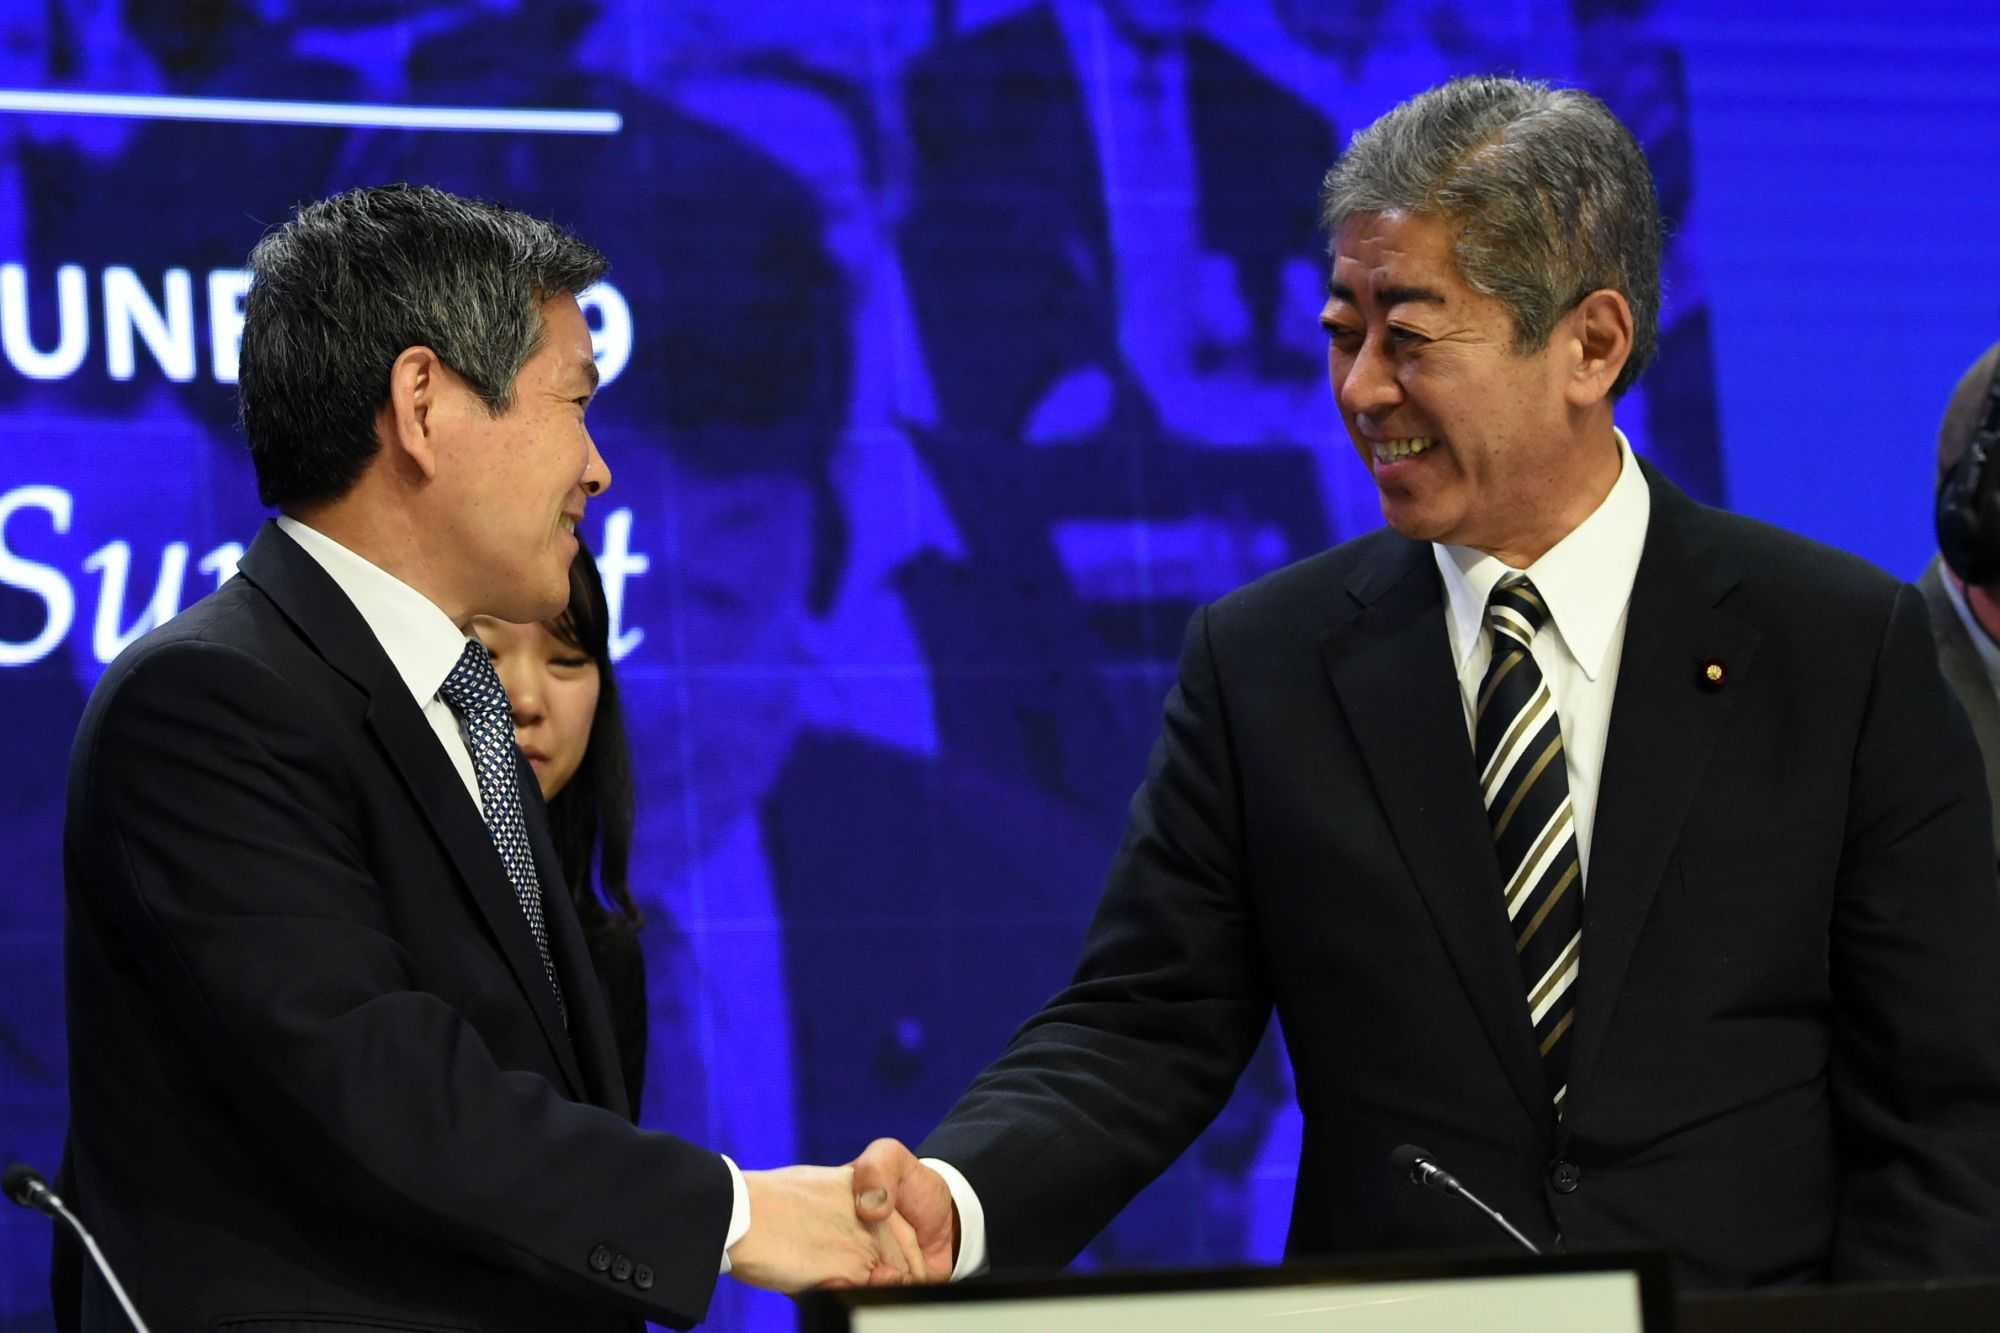 Defense Minister Takeshi Iwaya (right) greets his South Korean counterpart, Jeong Kyeong-doo, during the Shangri-La Dialogue in Singapore on Saturday. | AFP-JIJI